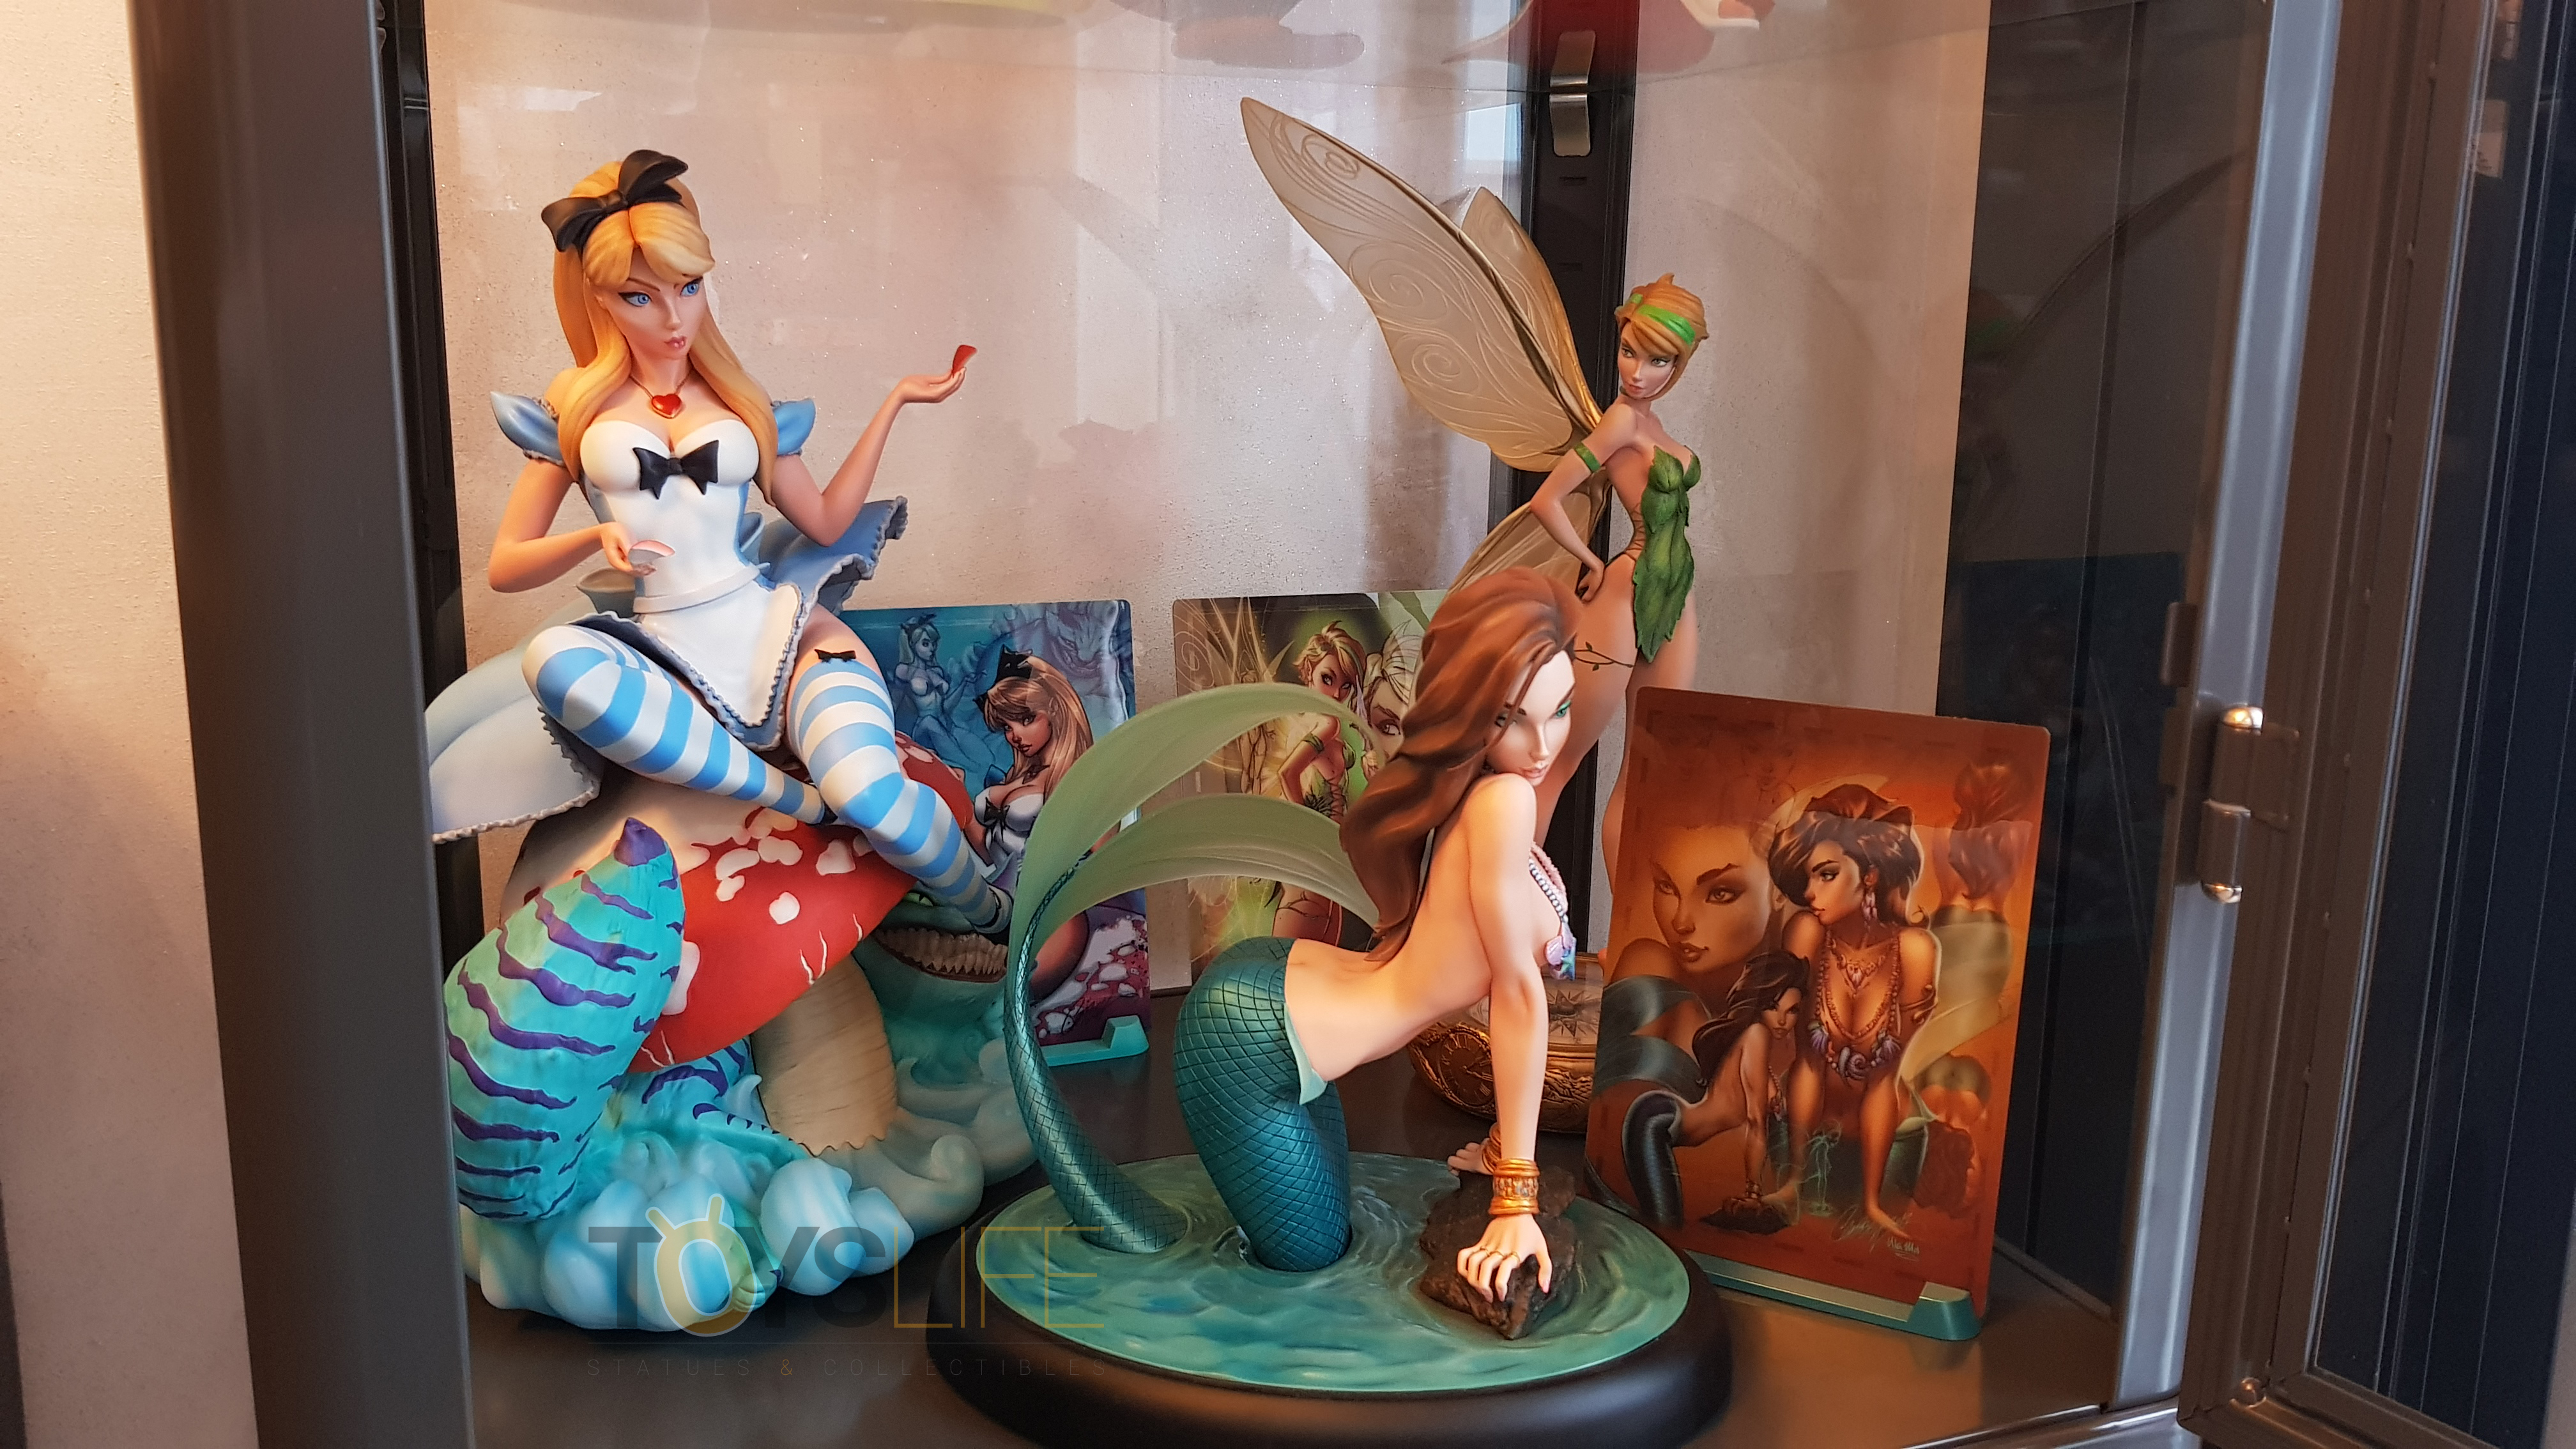 sideshow-fairytale-fantasies-jscampbell-alice-exclusive-statue-toyslife-review-19